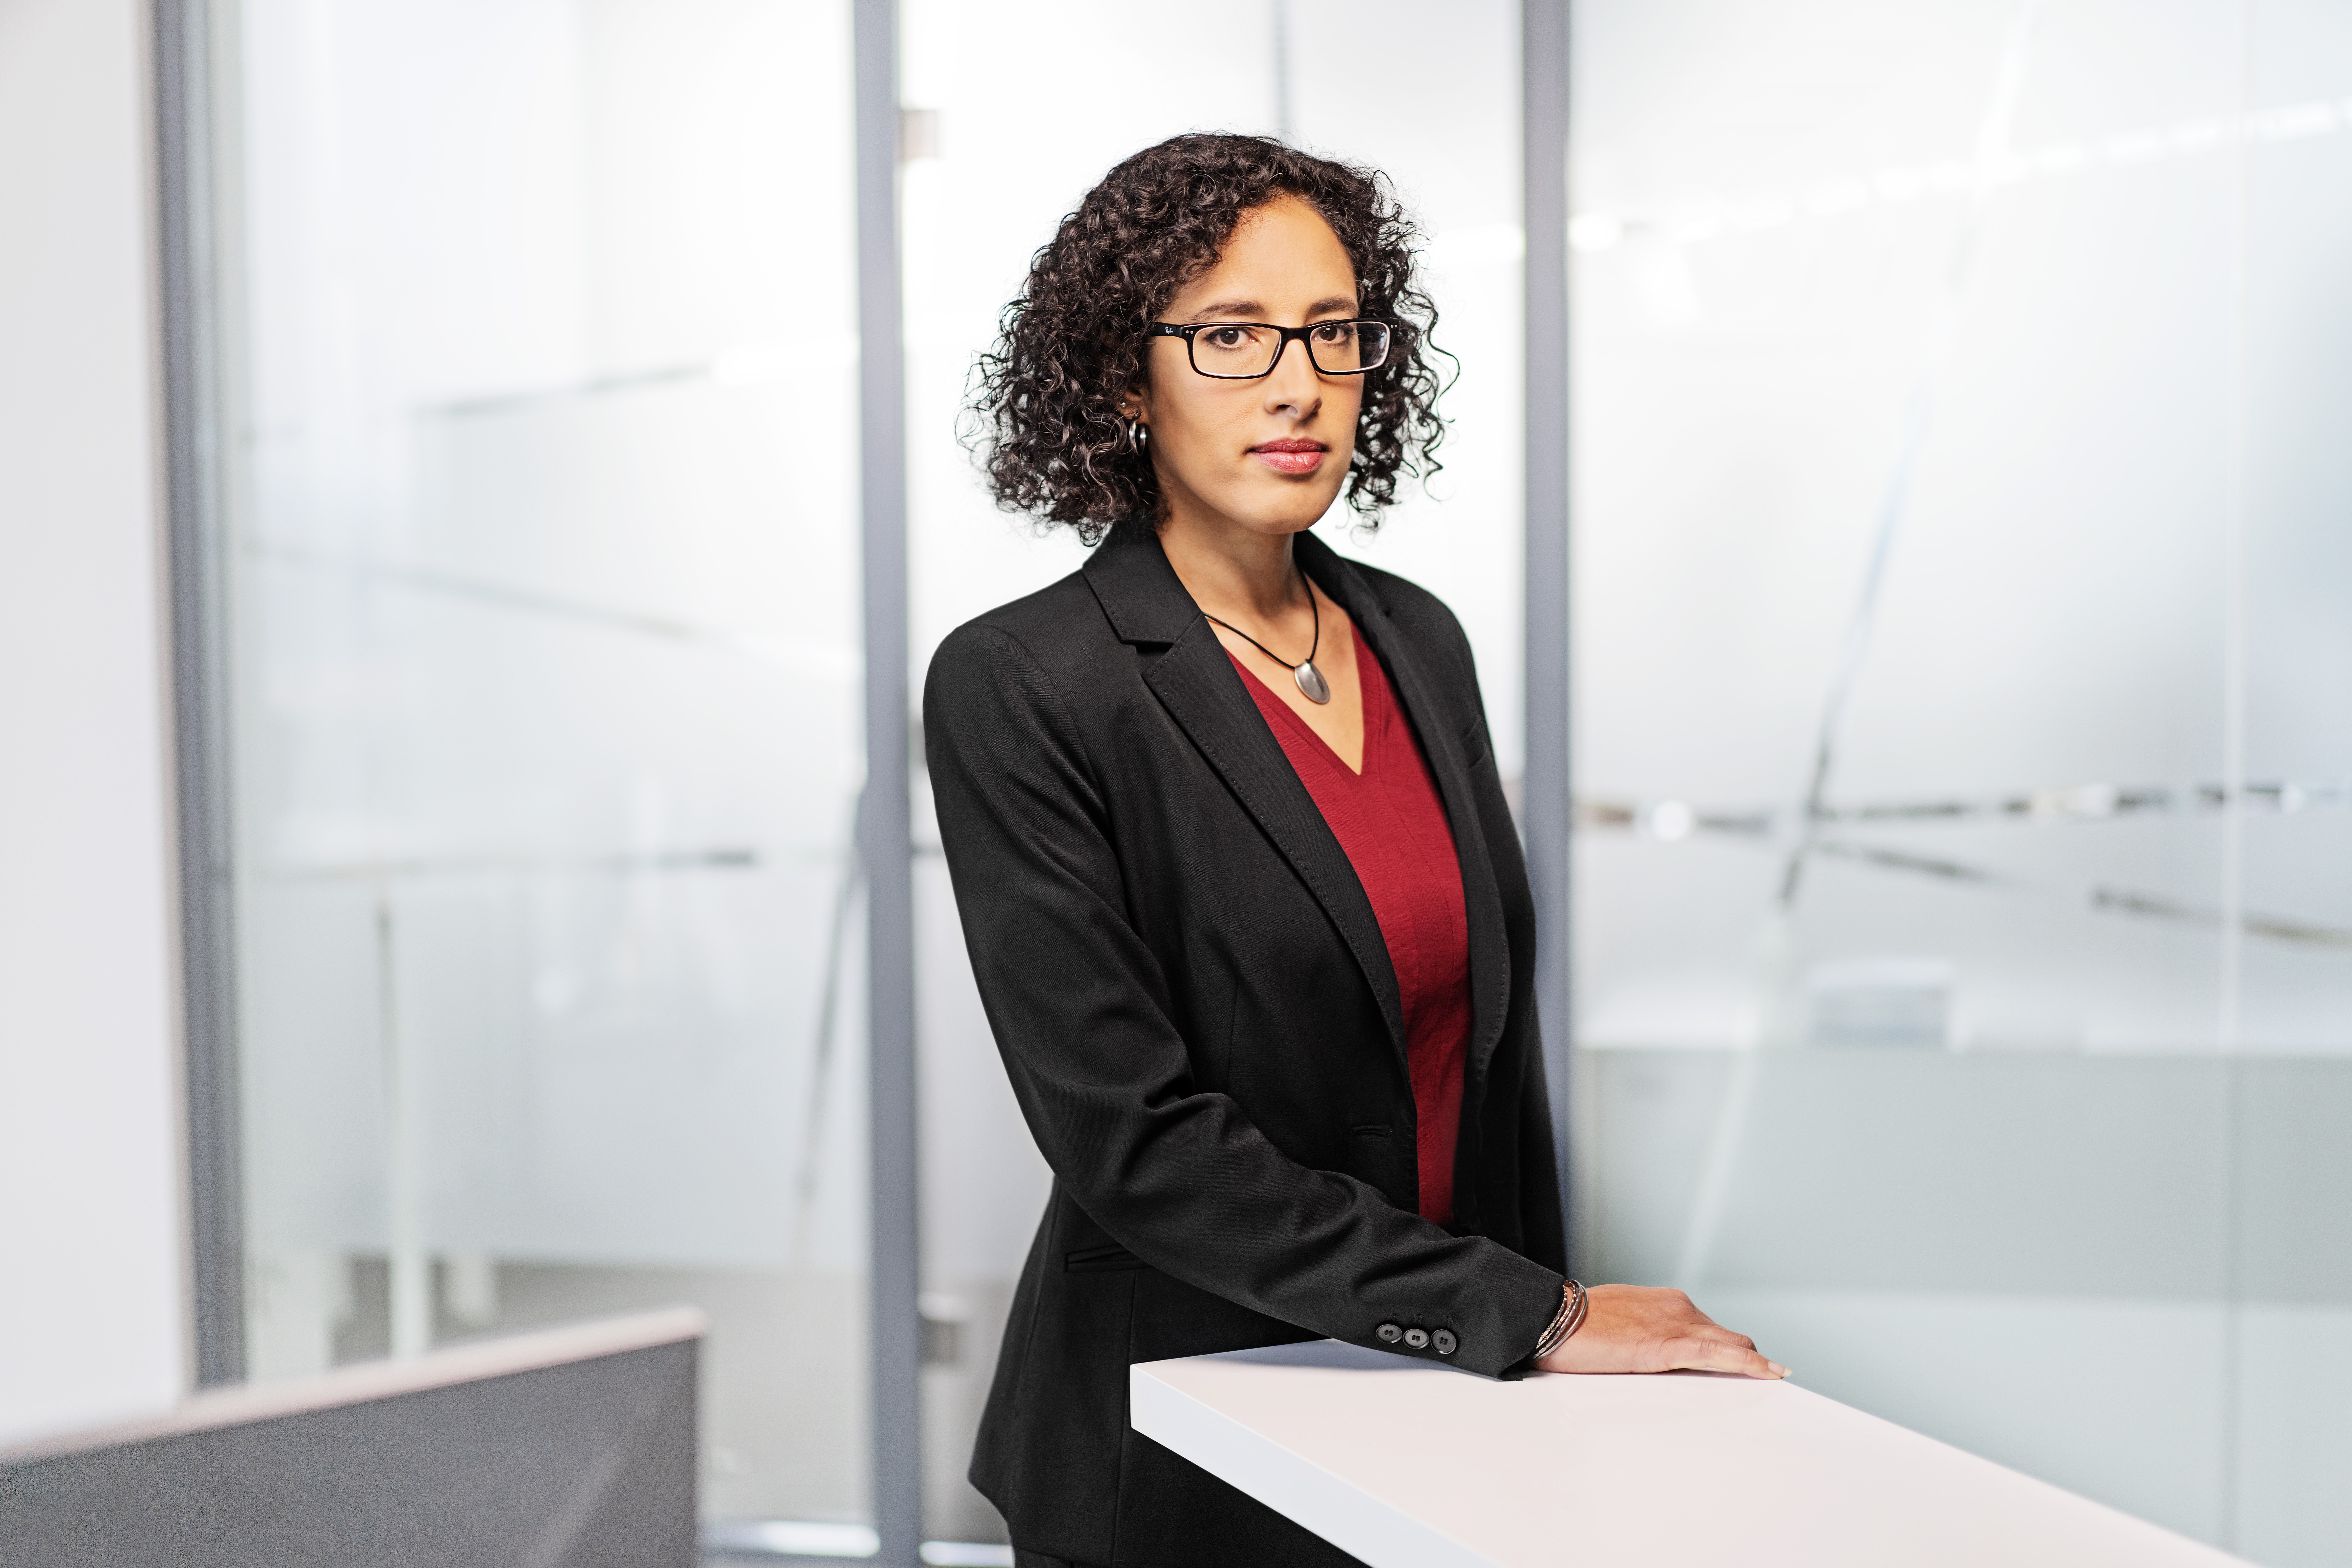 SKODA AUTO appoints Arwa Oeljeklaus to lead operations in North Africa - Image 1